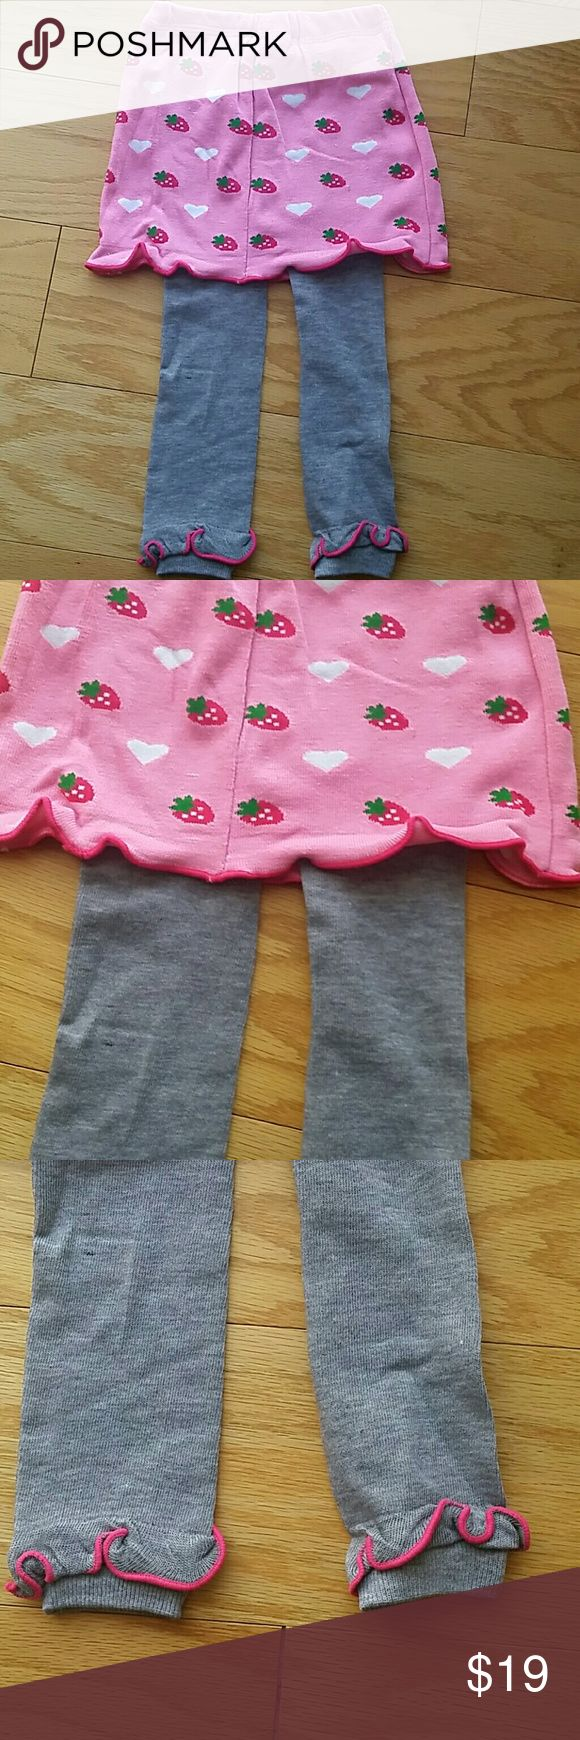 NWT Strawberries Skort Adorable pink and gray skort with strawberries and hearts. This item is brand new and never used Bottoms Skorts